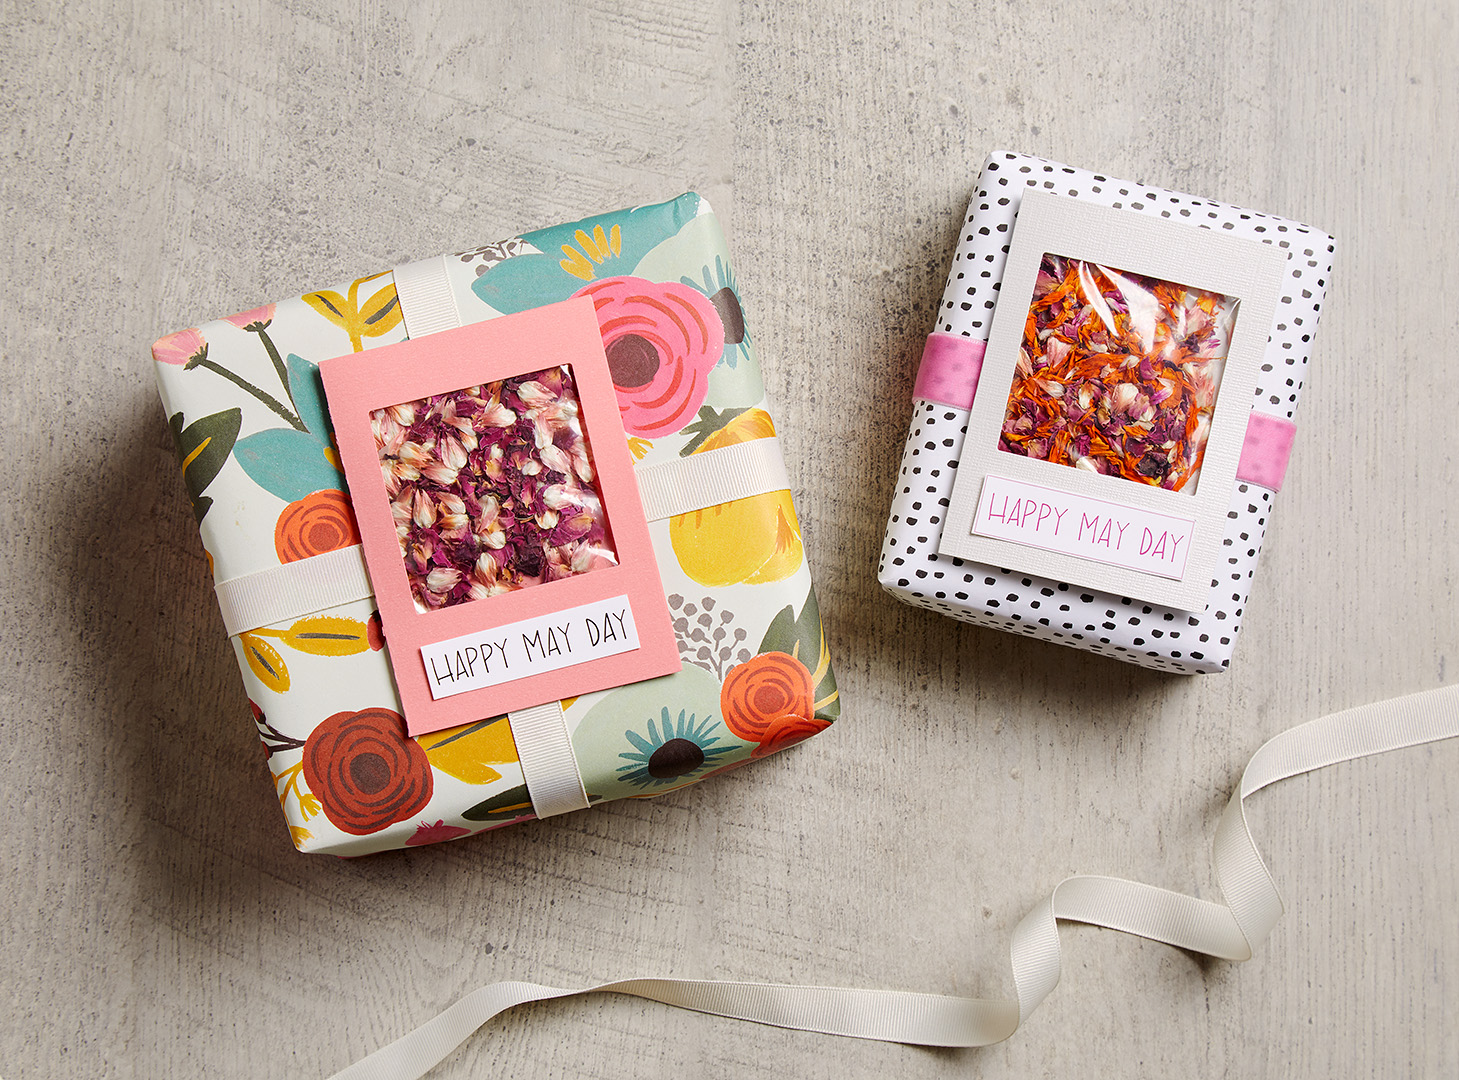 presents with diy Happy May Day gift tags